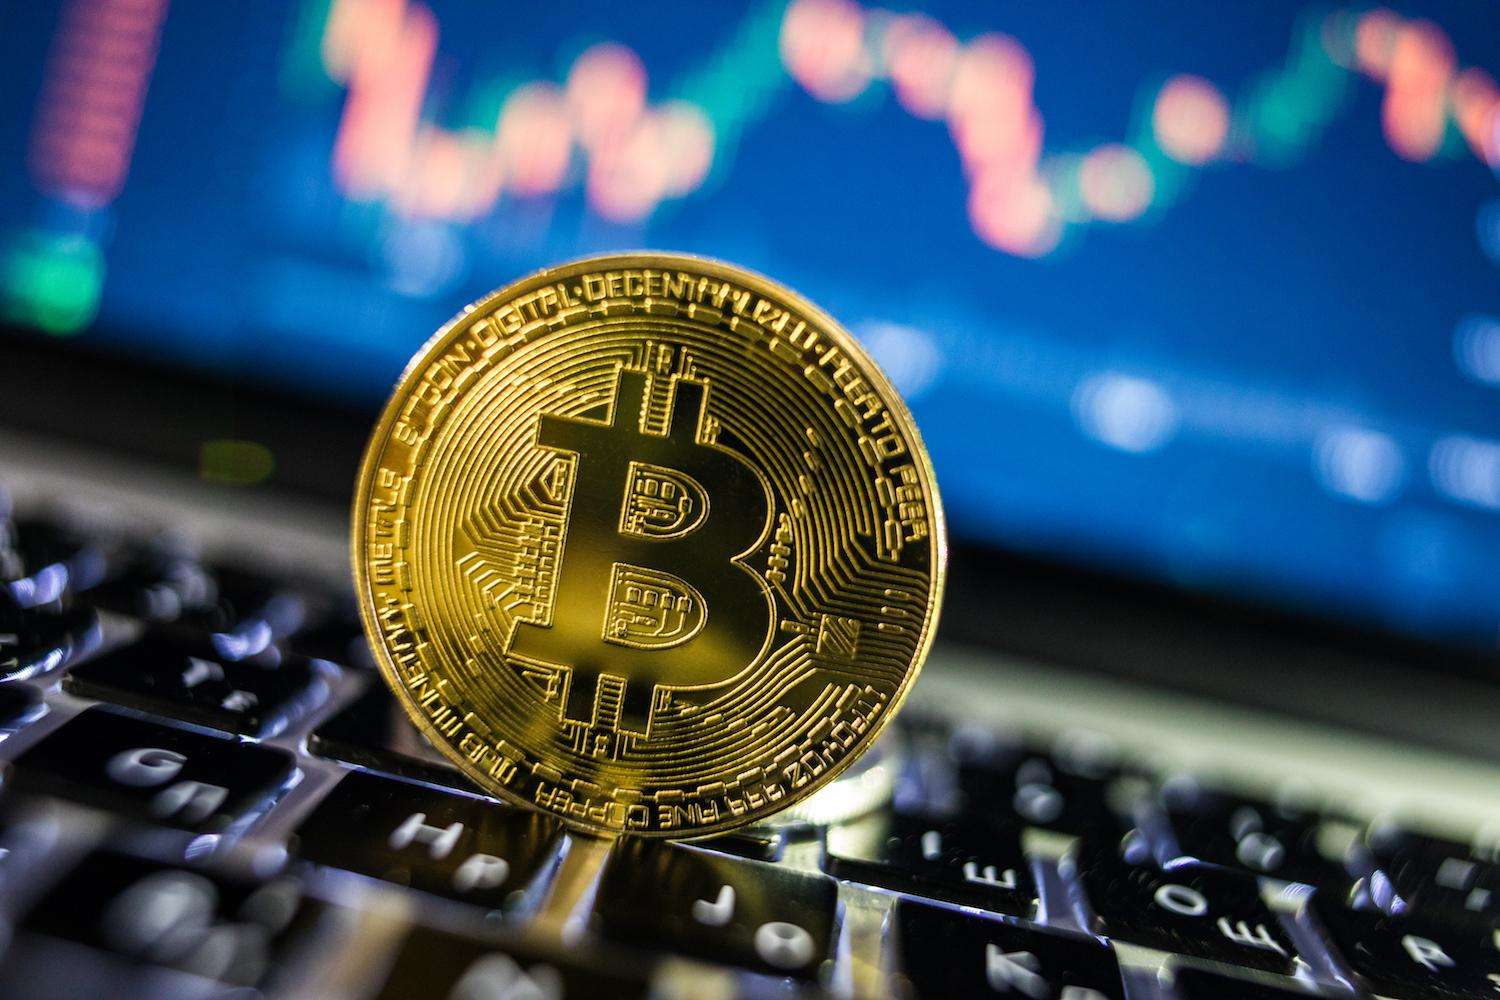 Old Zeng said currency: Bitcoin continues to break its position, can it continue bullish sentiment at night?